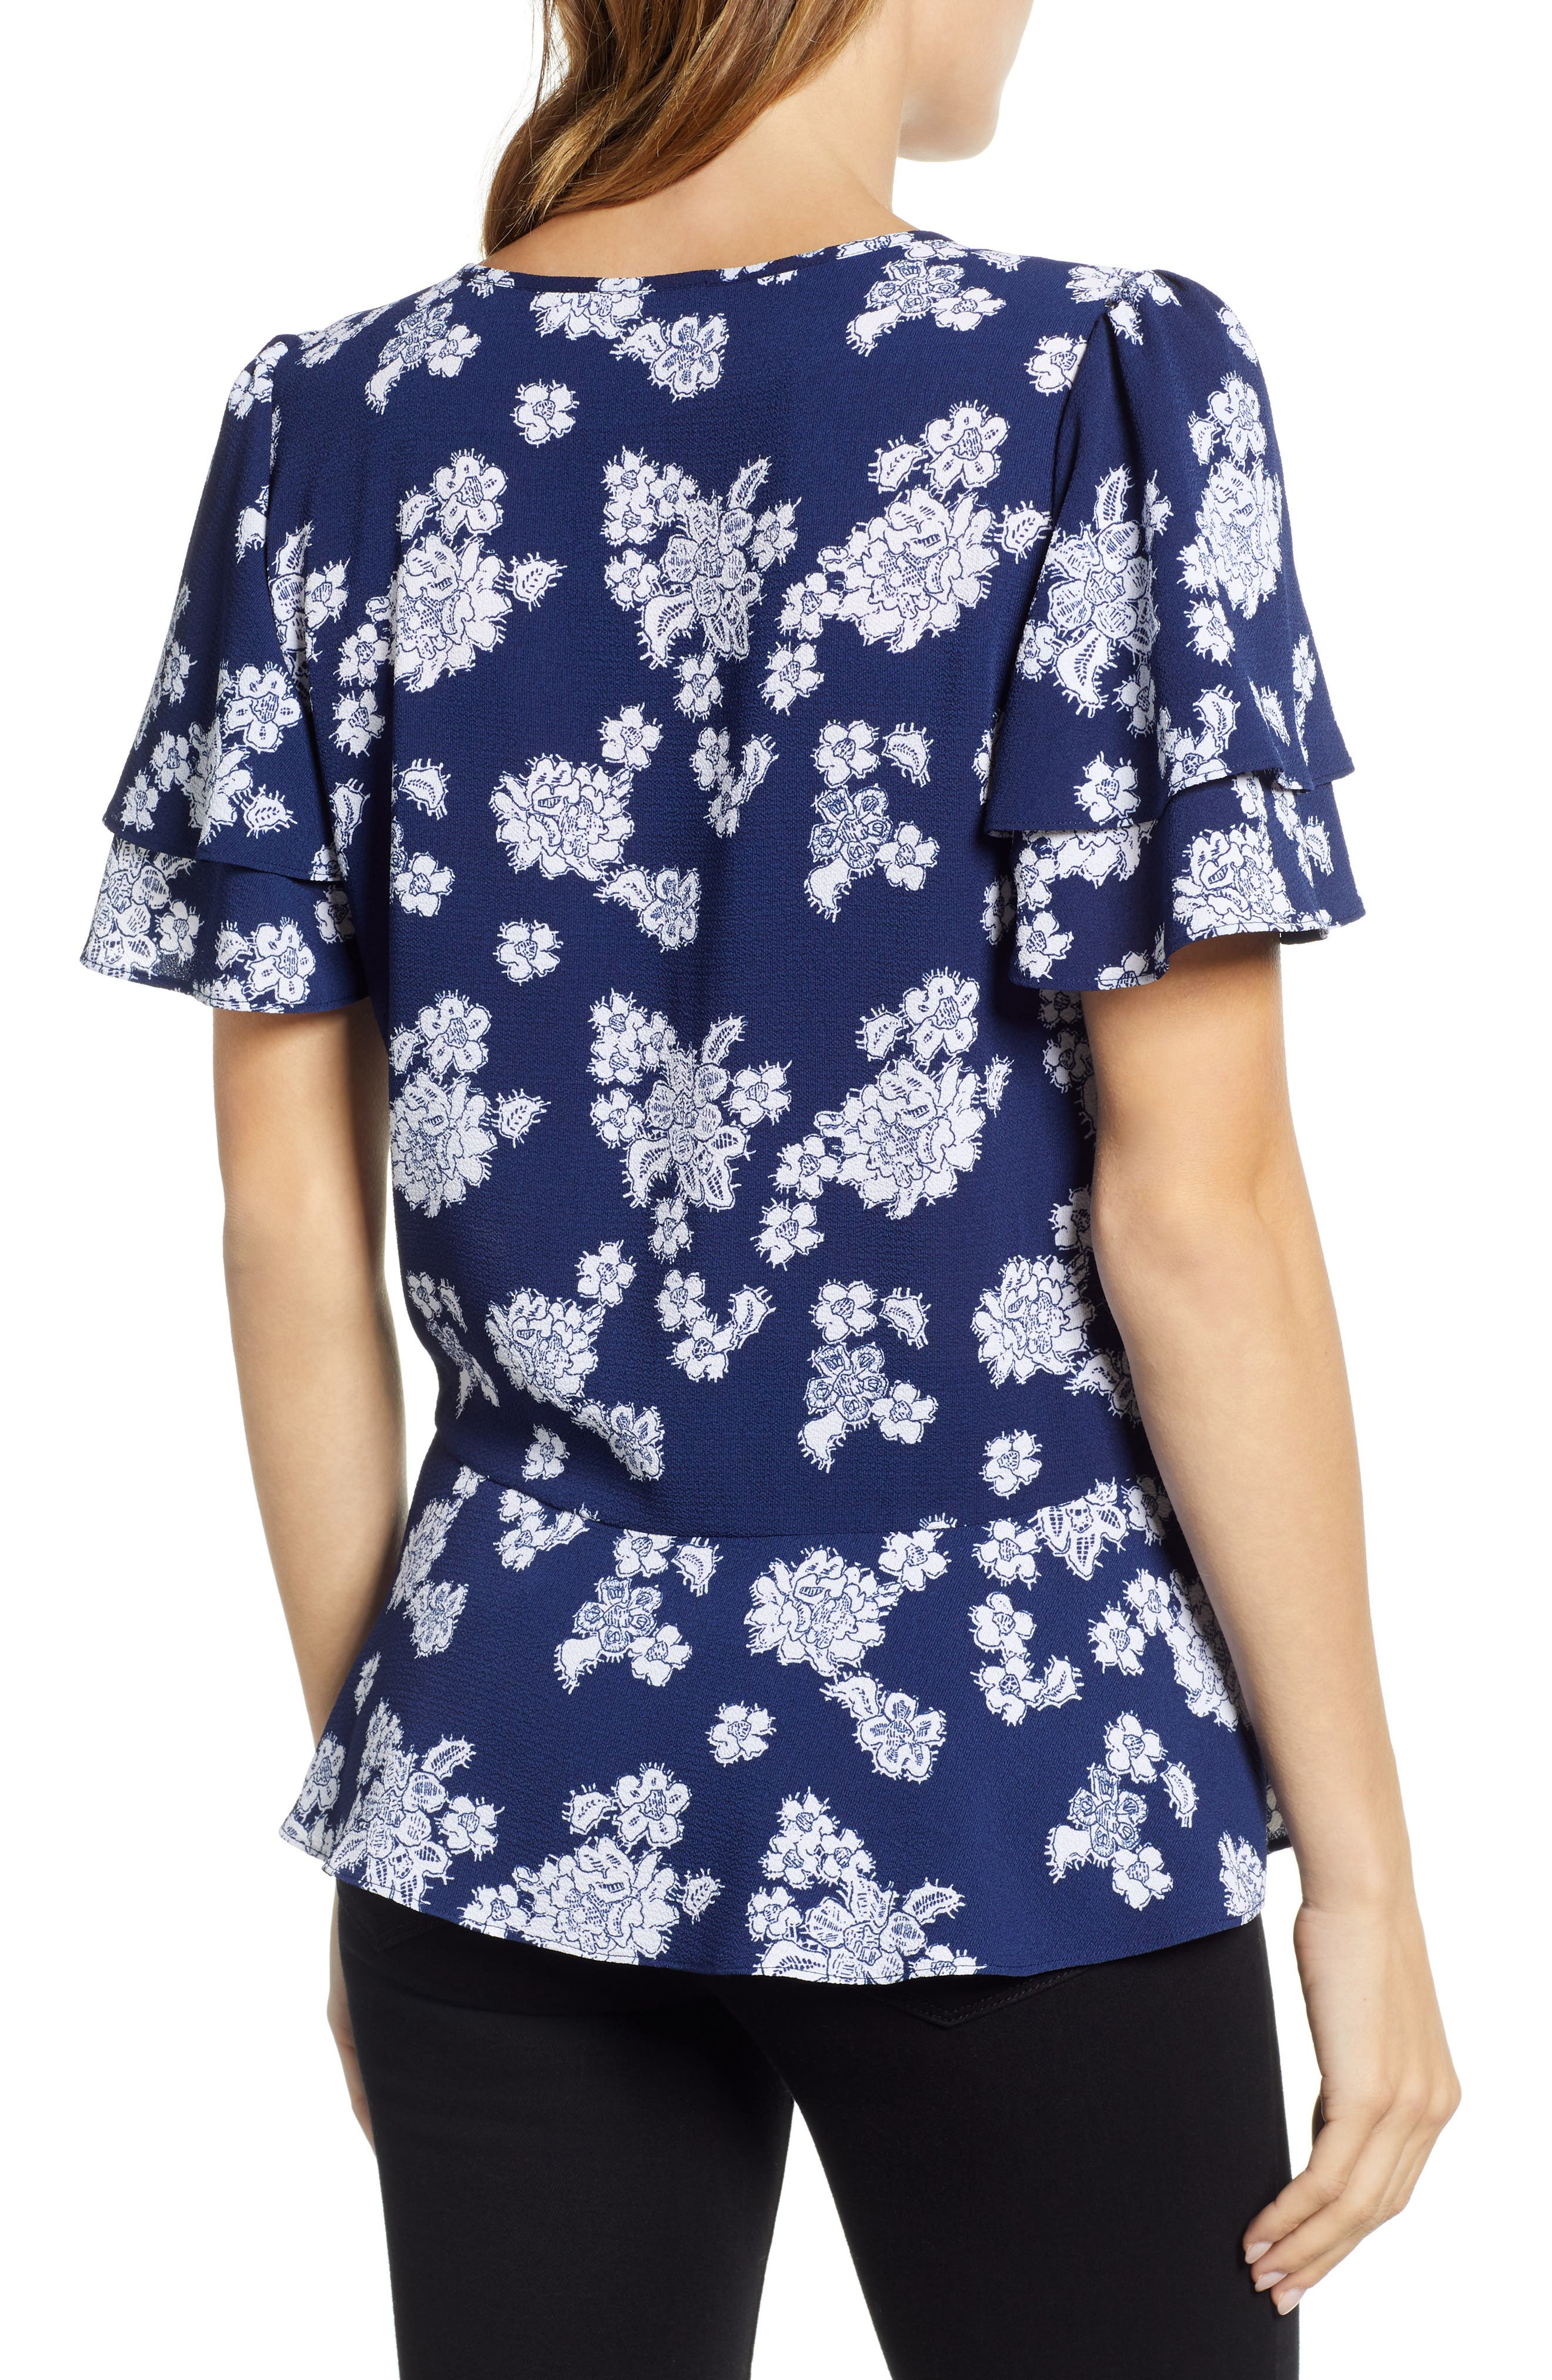 Tossed Lace Flowers Top,                             Alternate thumbnail 2, color,                             TRUE NAVY/ WHITE